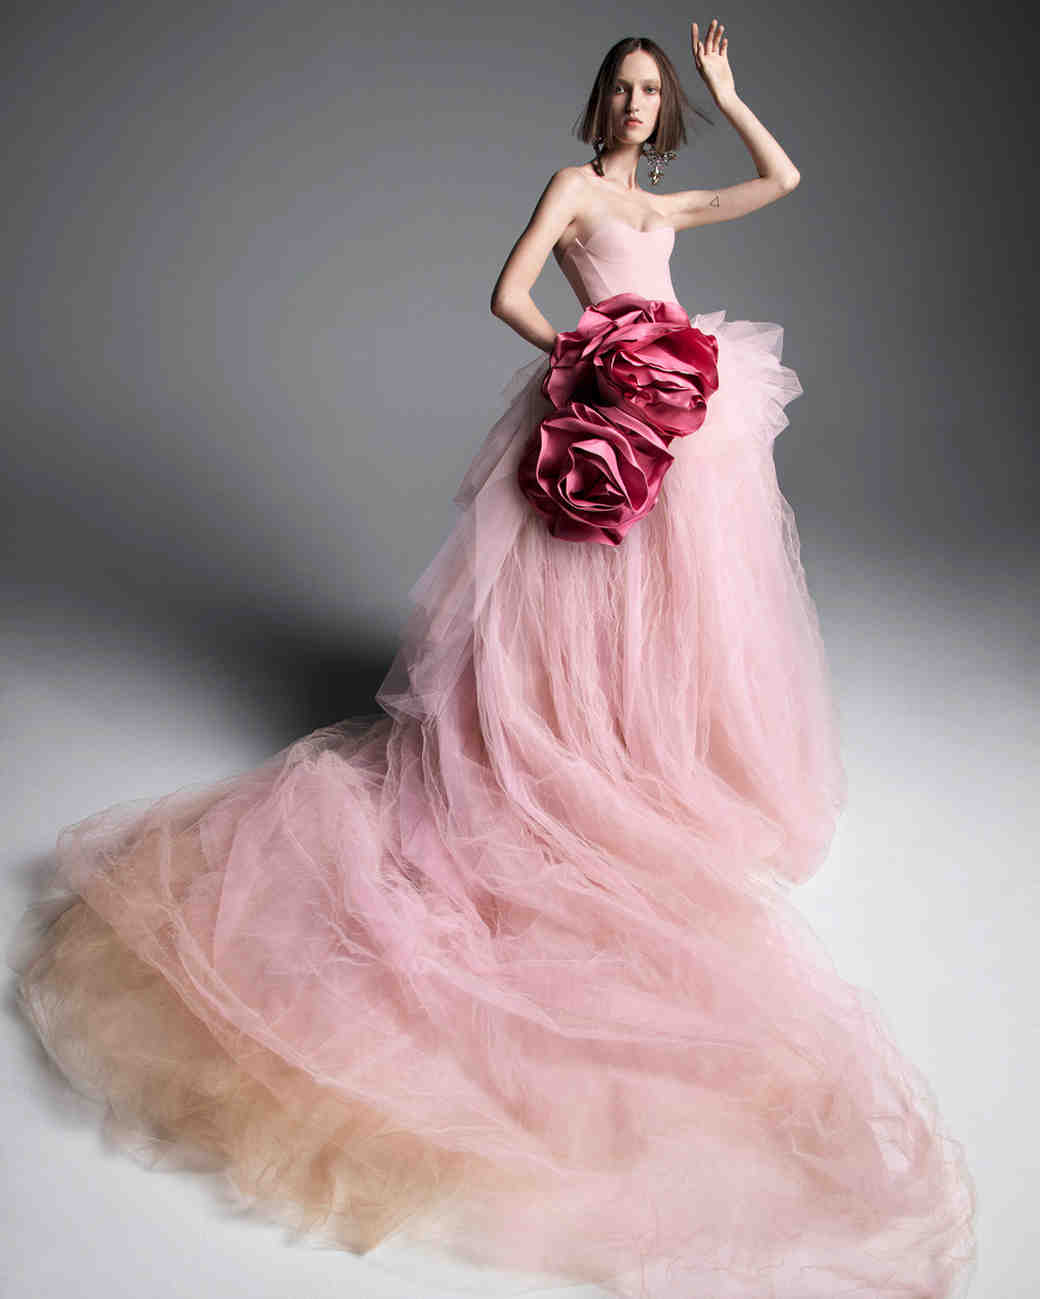 adeae1872f4 Vera Wang Spring 2019 Wedding Dress Collection